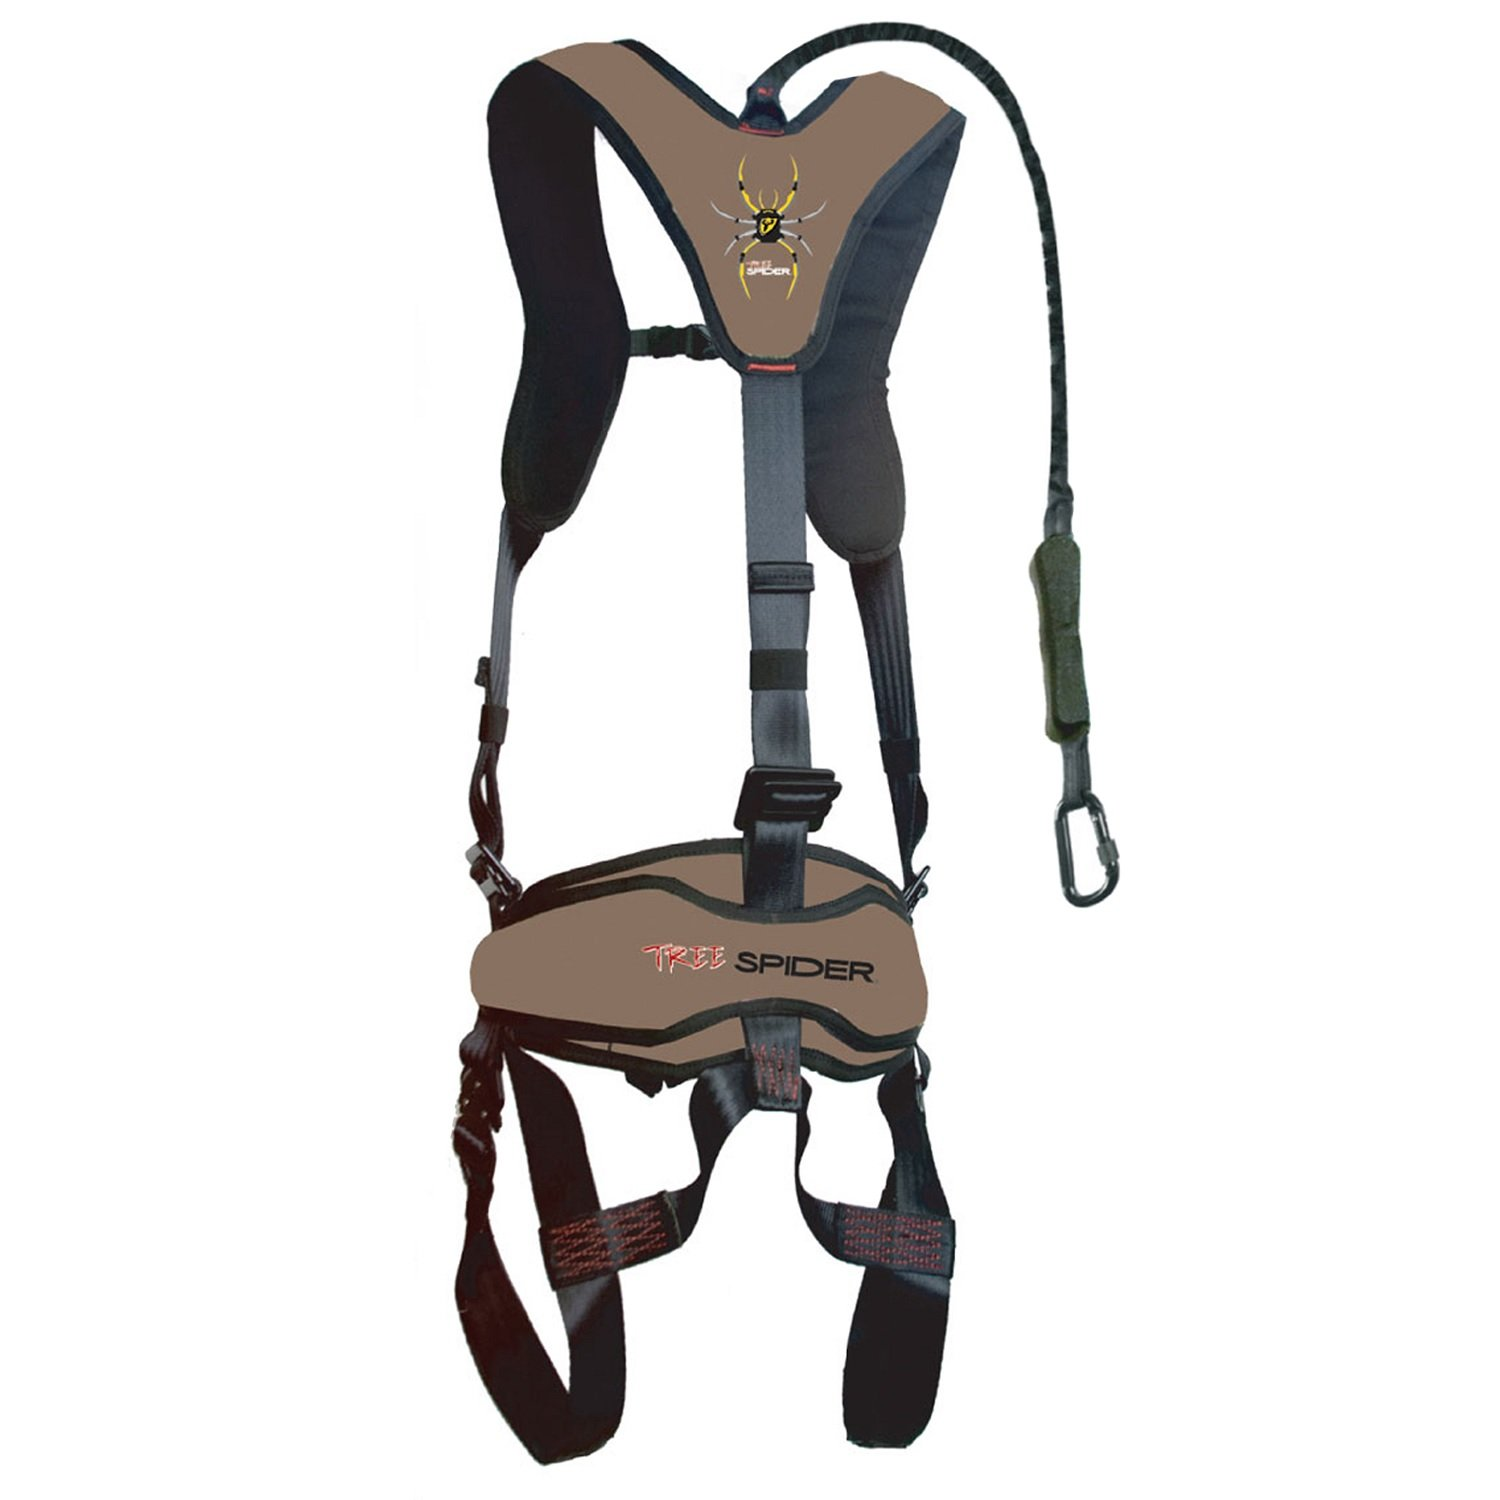 61lp6%2Bybr4L._SL1500_ amazon com tree spider ripstop spiderweb hunting safety harness Sexy Climbing Harness at gsmx.co